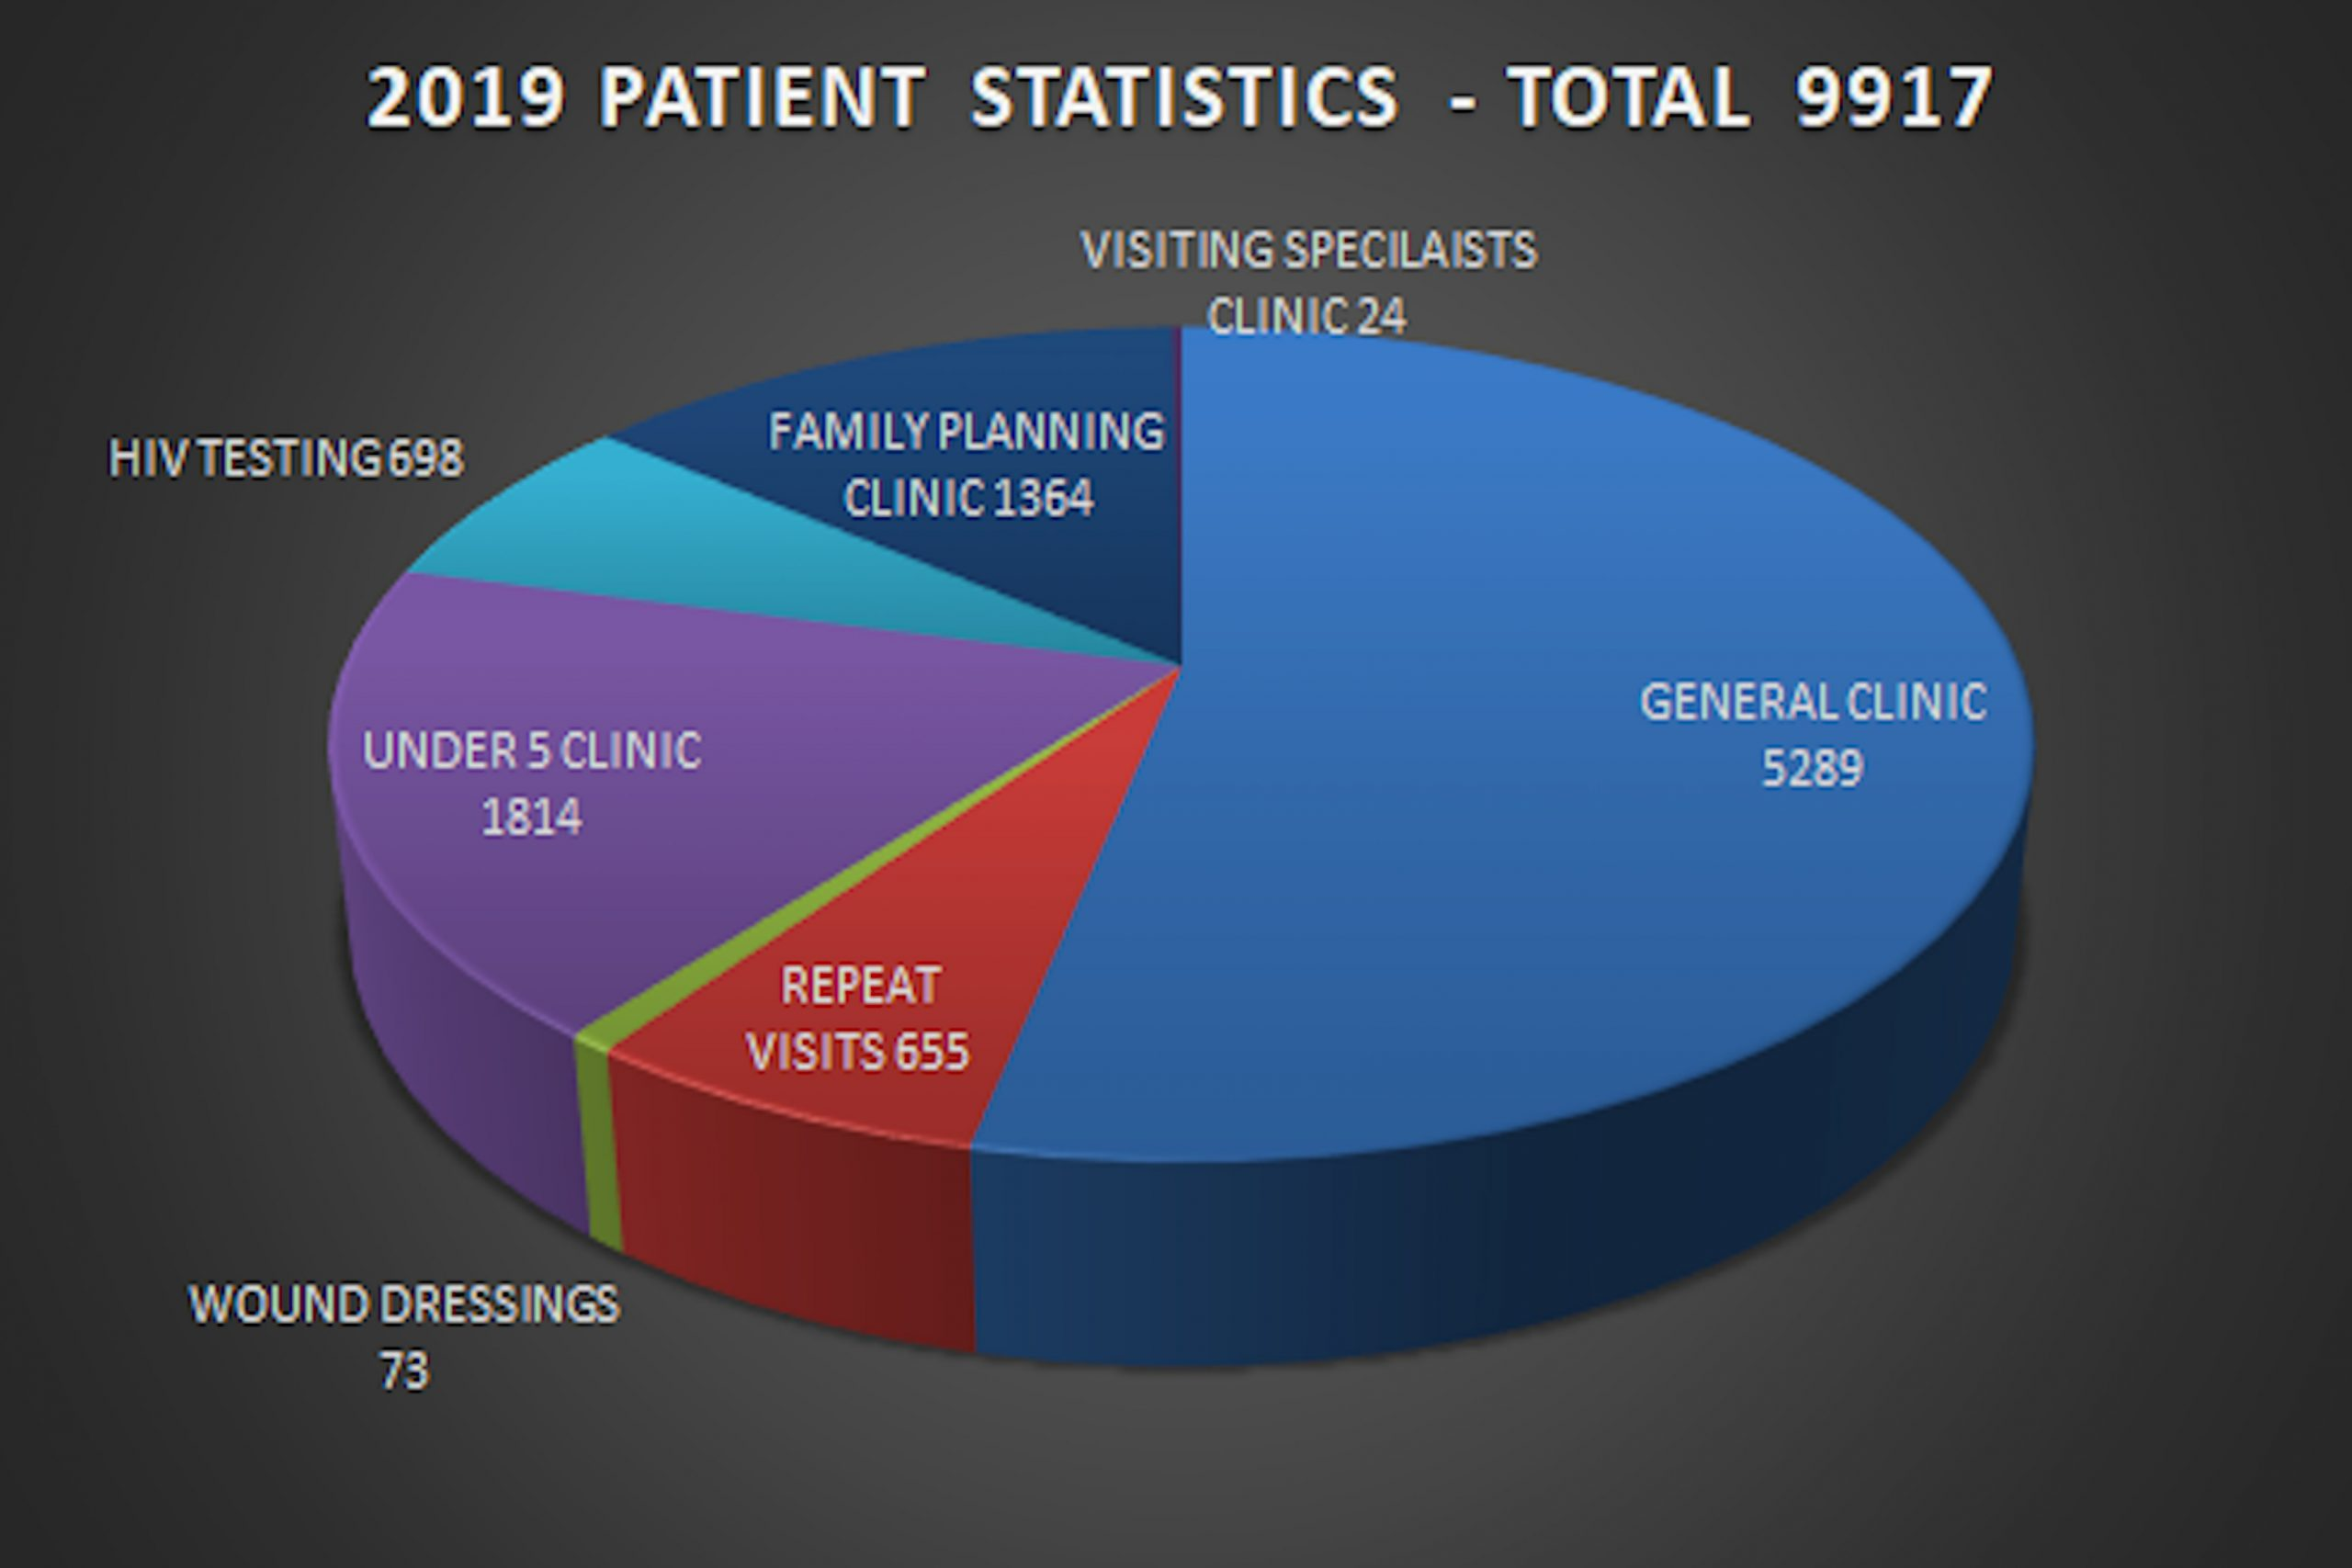 Patient visits in 2019